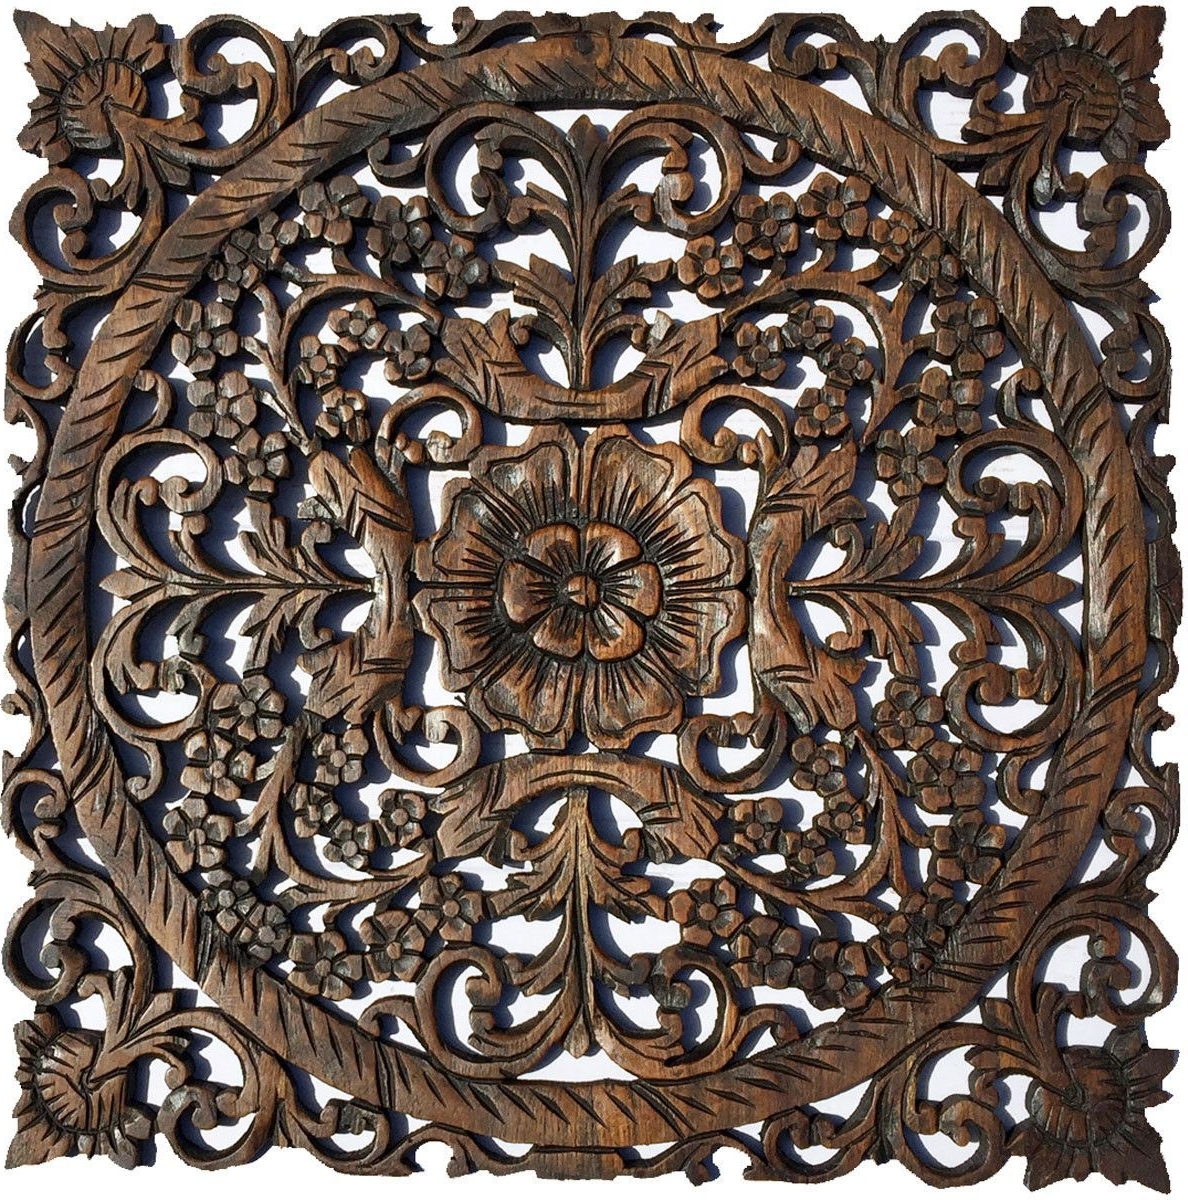 Oriental Carved Floral Wall Decor. Unique Asian Wood Wall Art. Large Inside Most Recently Released Large Rustic Wall Art (Gallery 13 of 20)